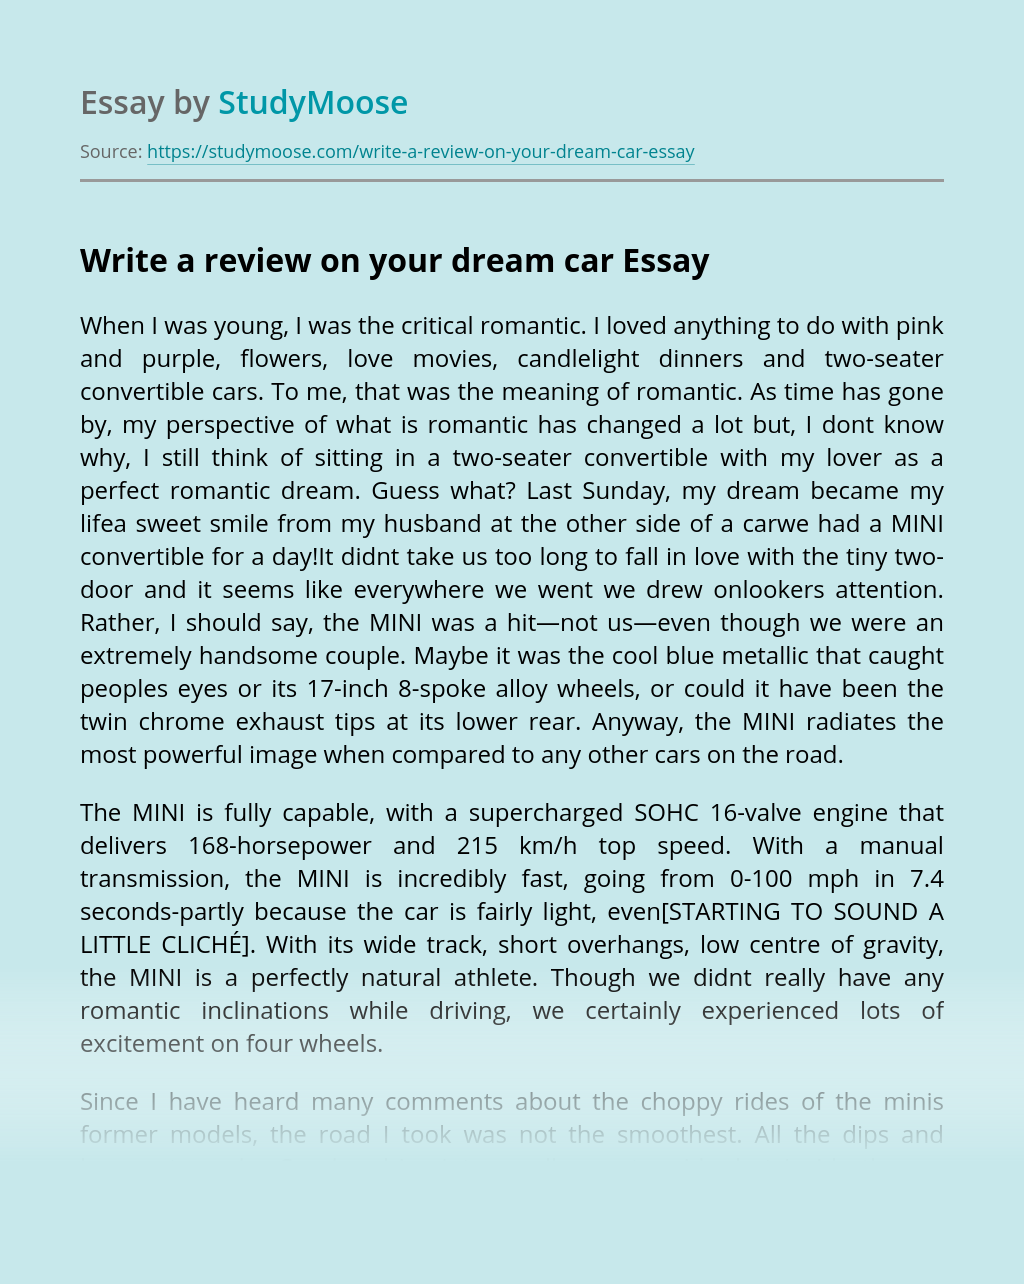 Write a review on your dream car